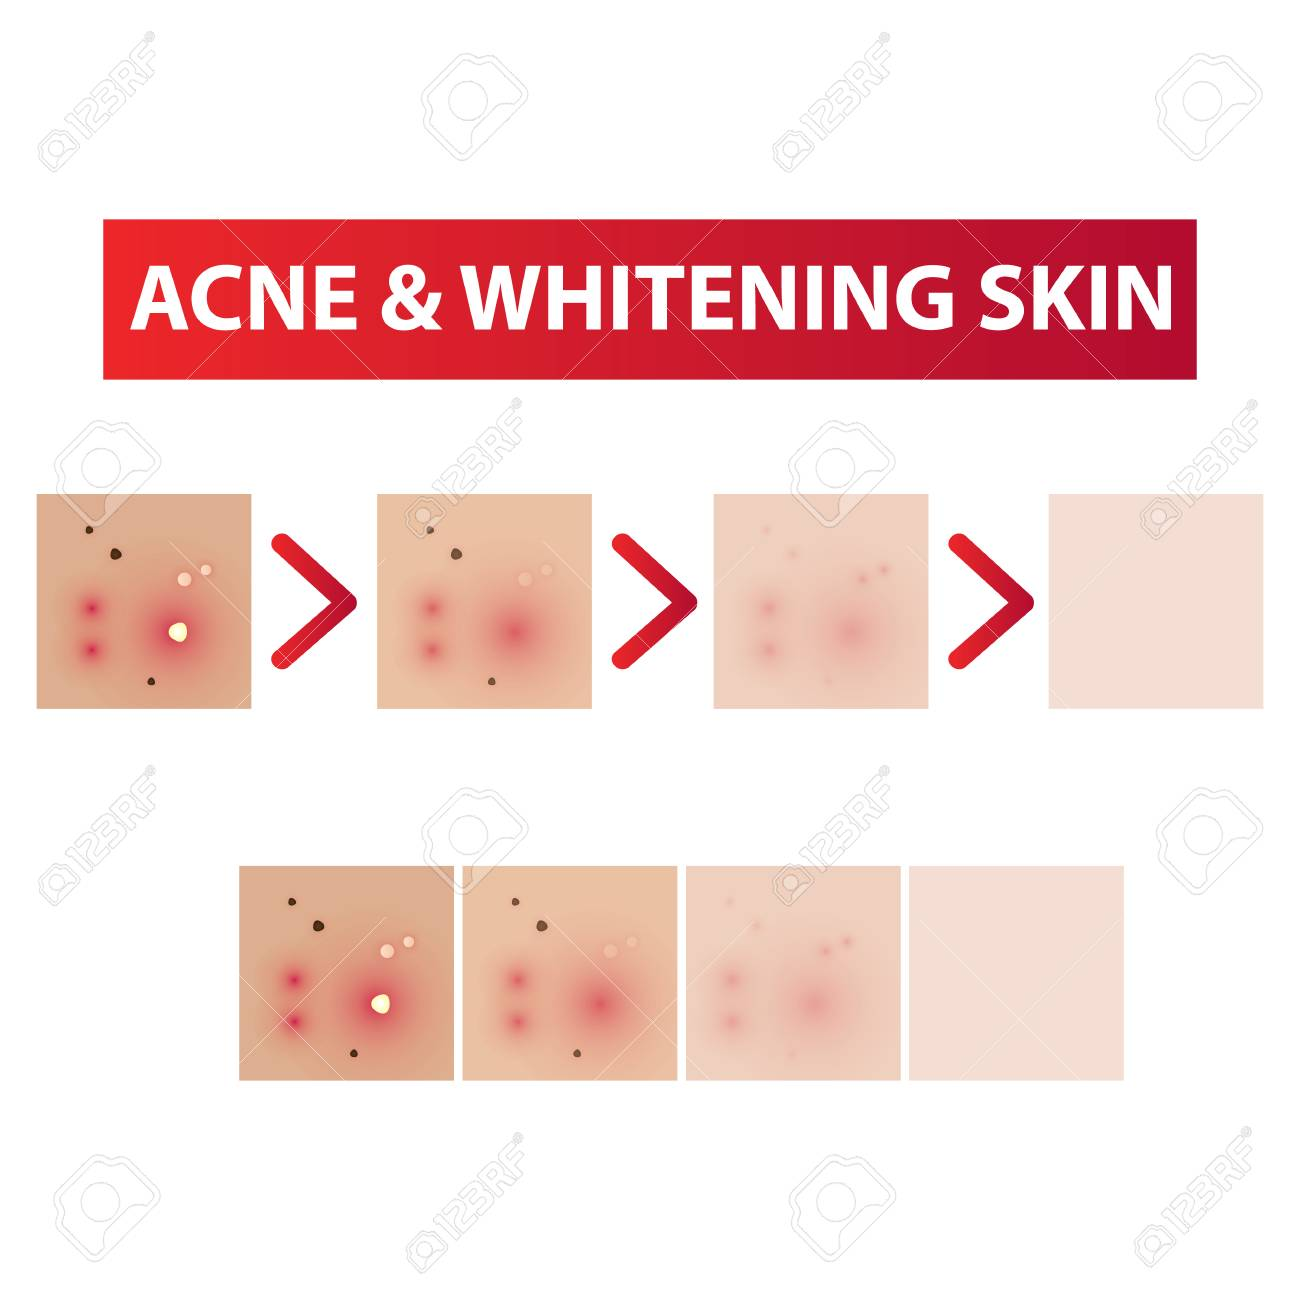 hight resolution of acne skin to clear diagram and whitening tones vector illustration stock vector 97093133